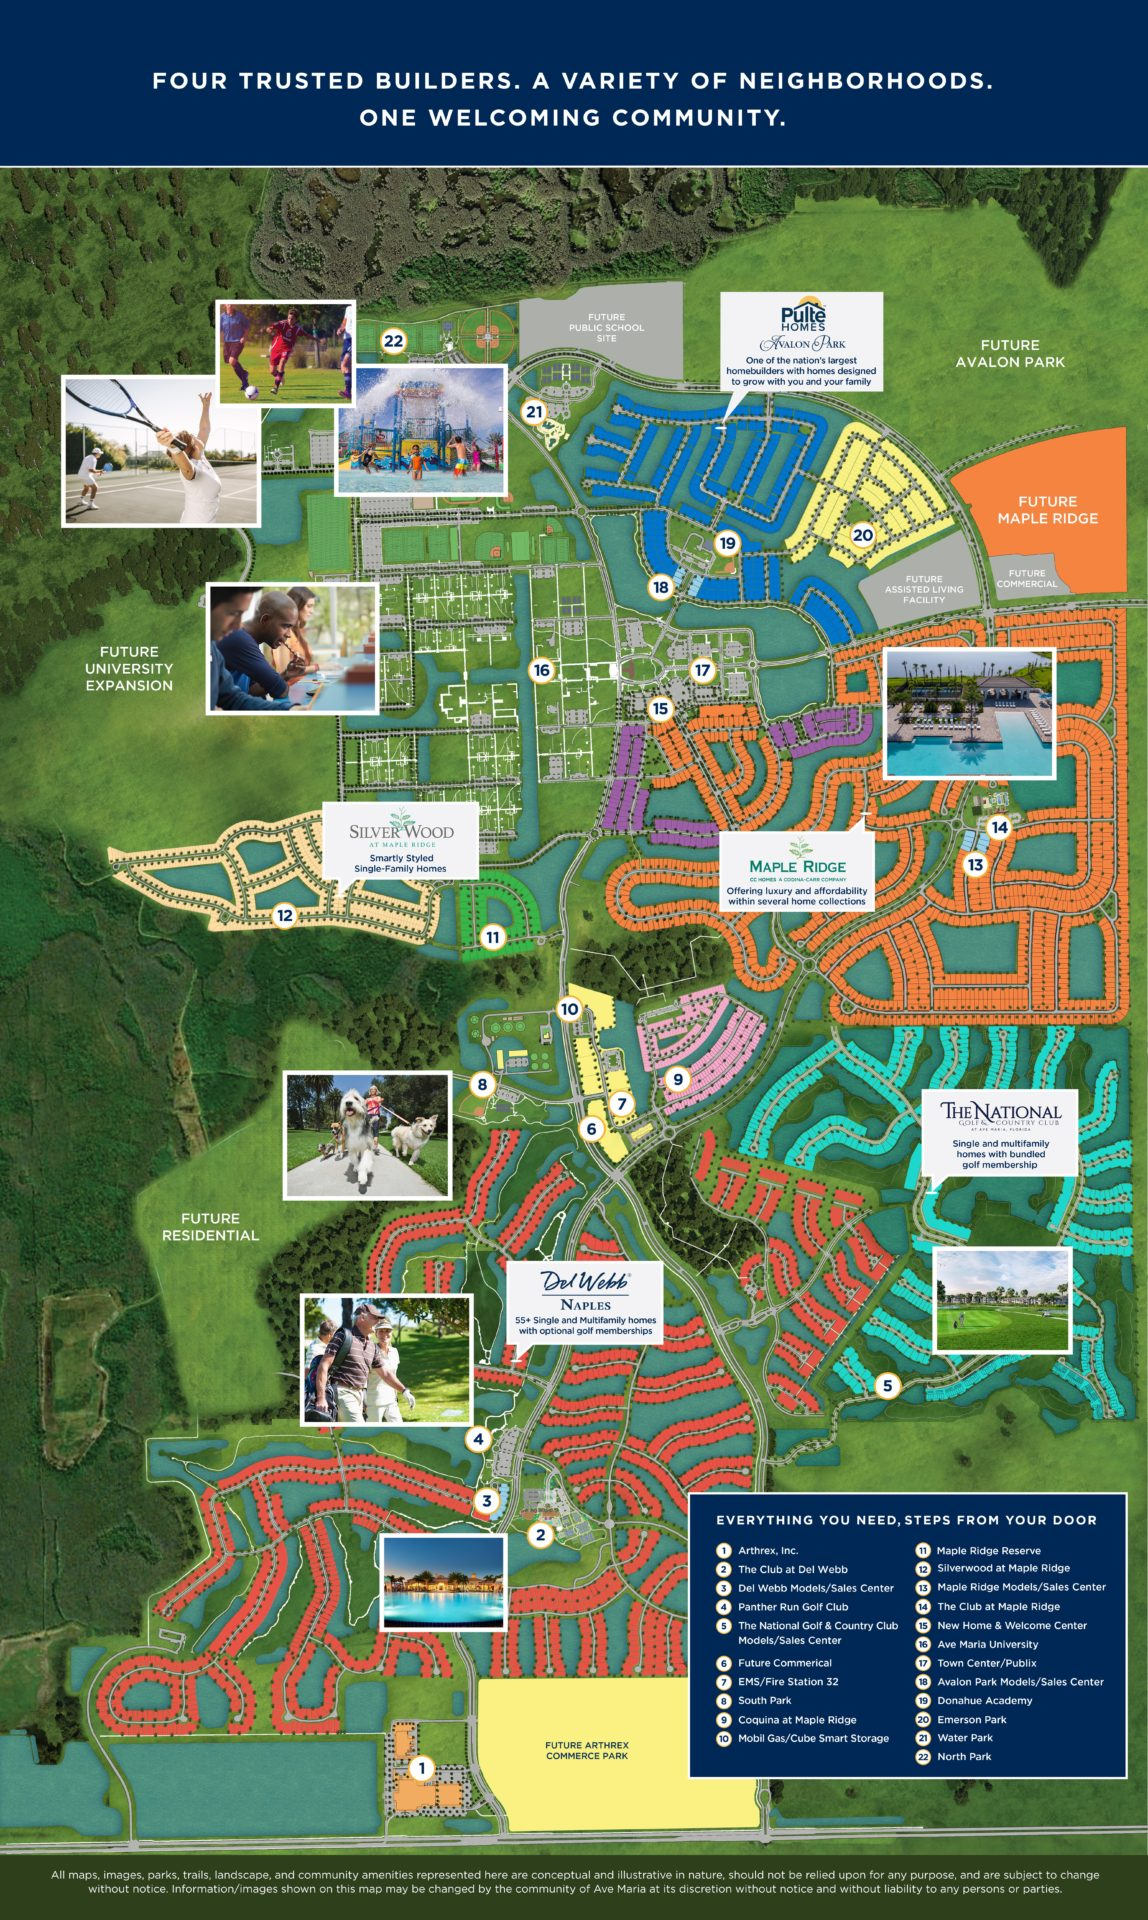 Colorful map of Ave Maria, Florida